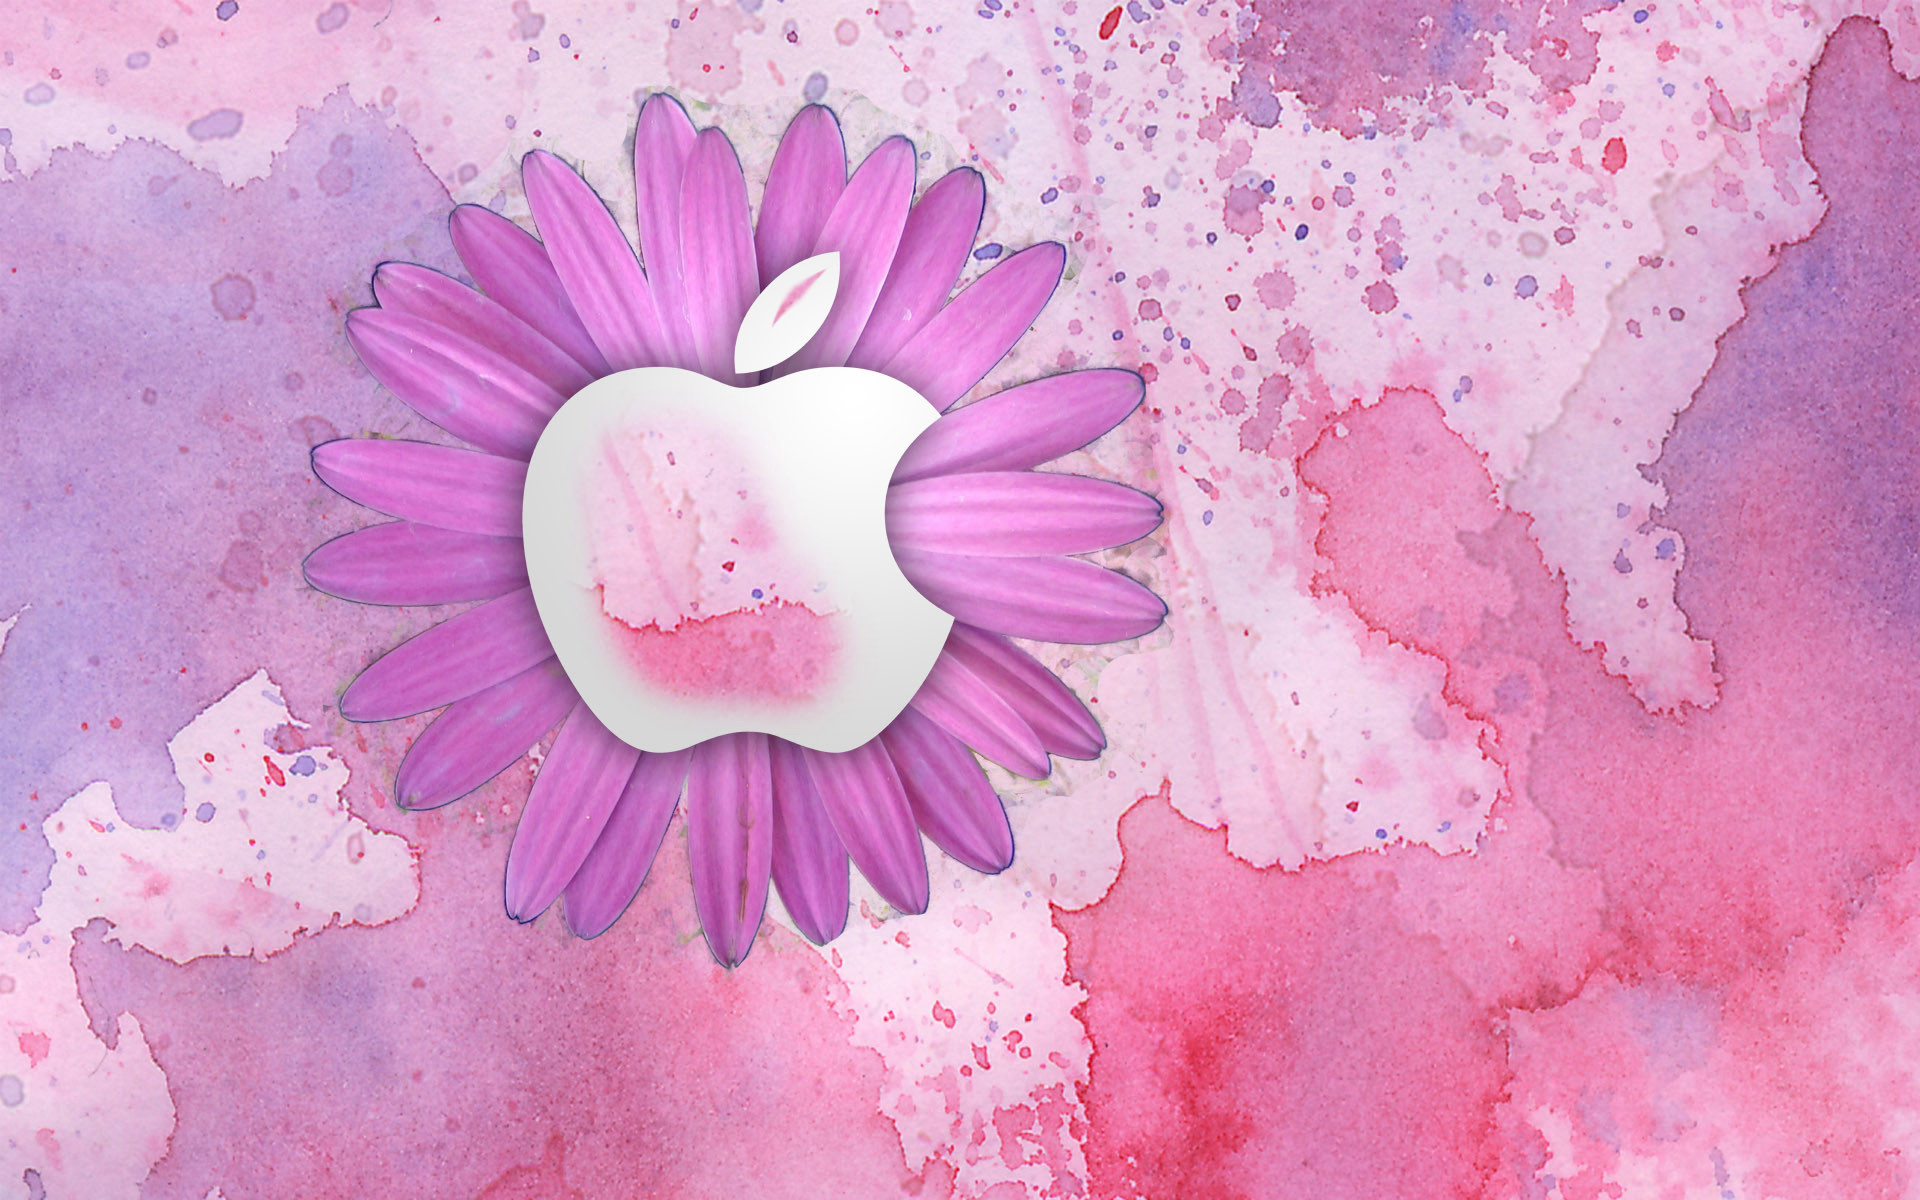 Marvellous Cute Wallpapers For Teens 90 For Your Minimalist Design Pictures  With Cute Wallpapers For Teens